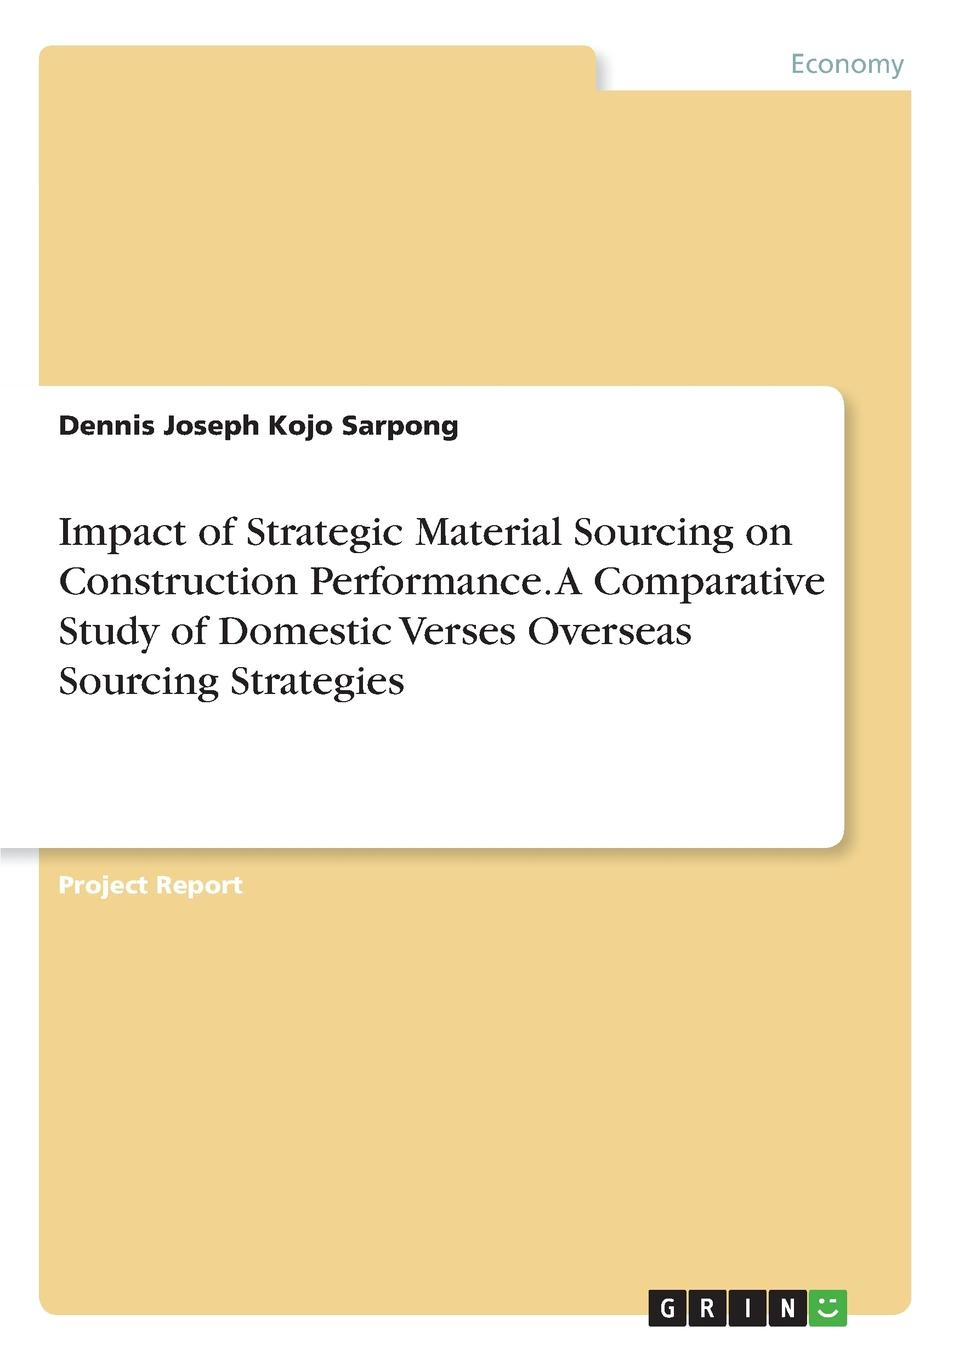 Dennis Joseph Kojo Sarpong Impact of Strategic Material Sourcing on Construction Performance. A Comparative Study of Domestic Verses Overseas Sourcing Strategies regression estimators – a comparative study 2e